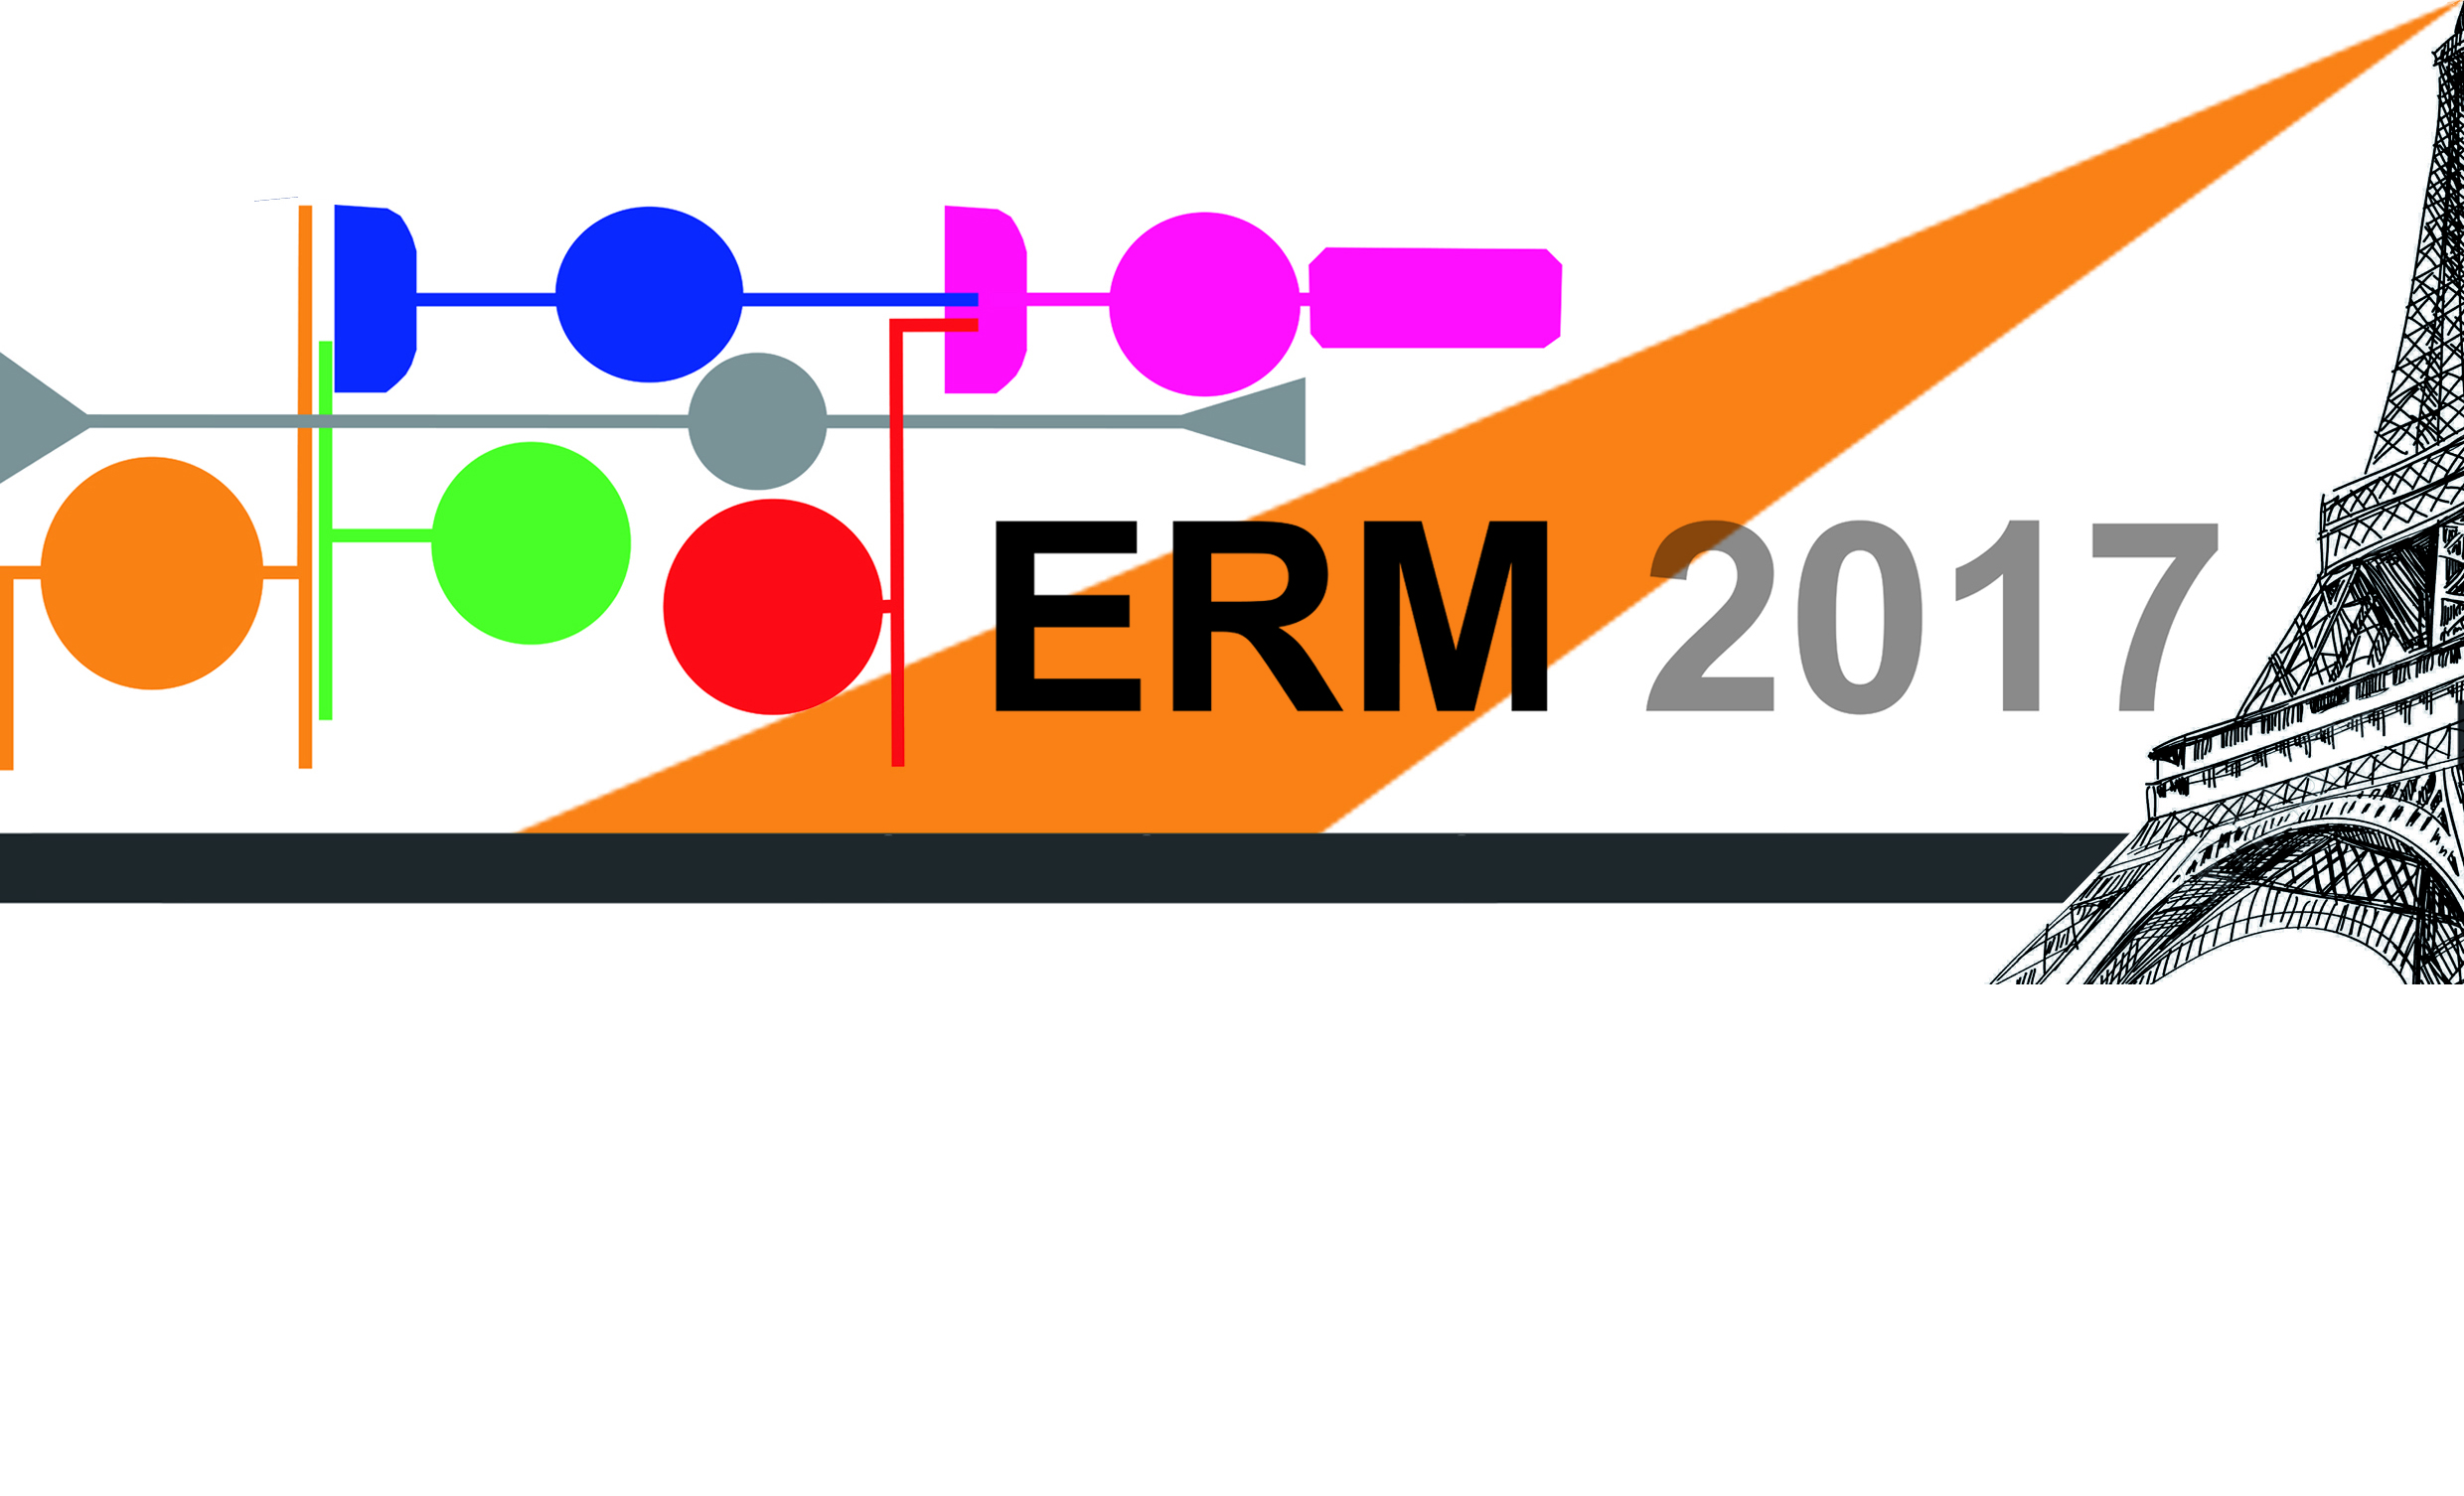 European Retina Meeting 2017